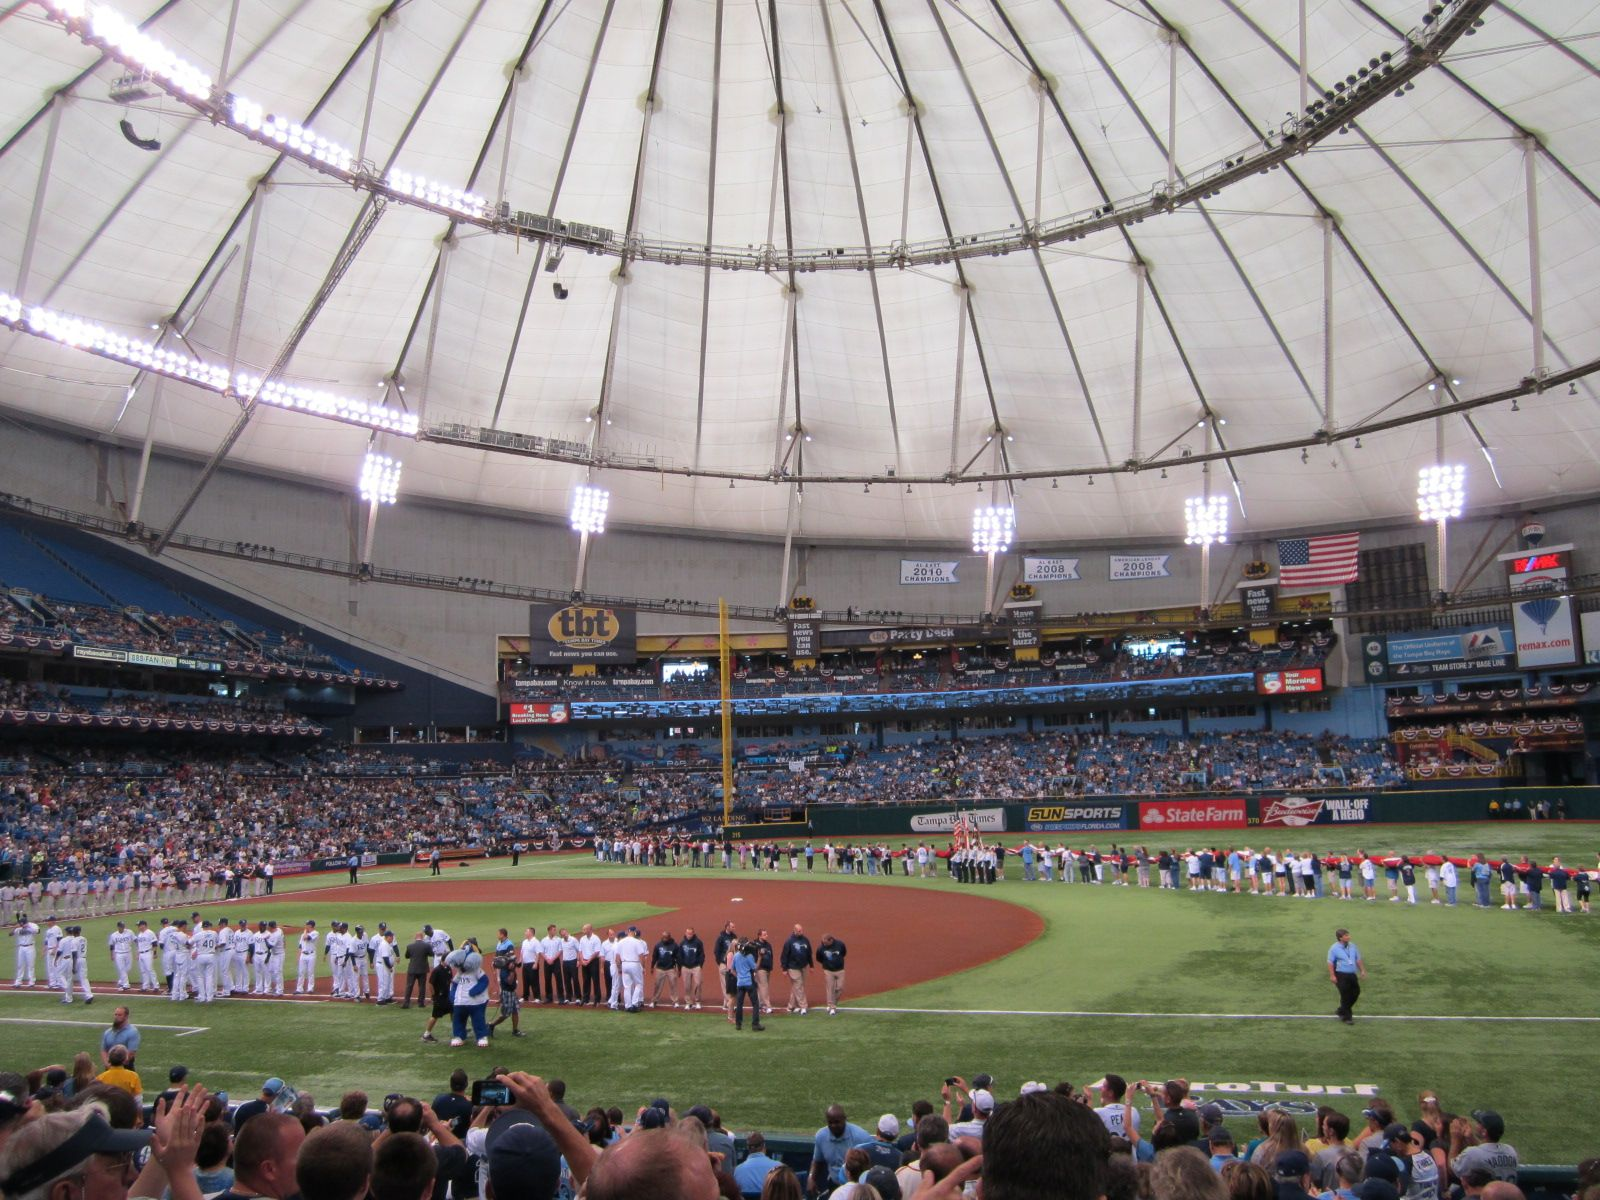 The Tropicana Dome Home The Of Rays With Images Baseball Park Tampa Bay Rays Tampa Bay